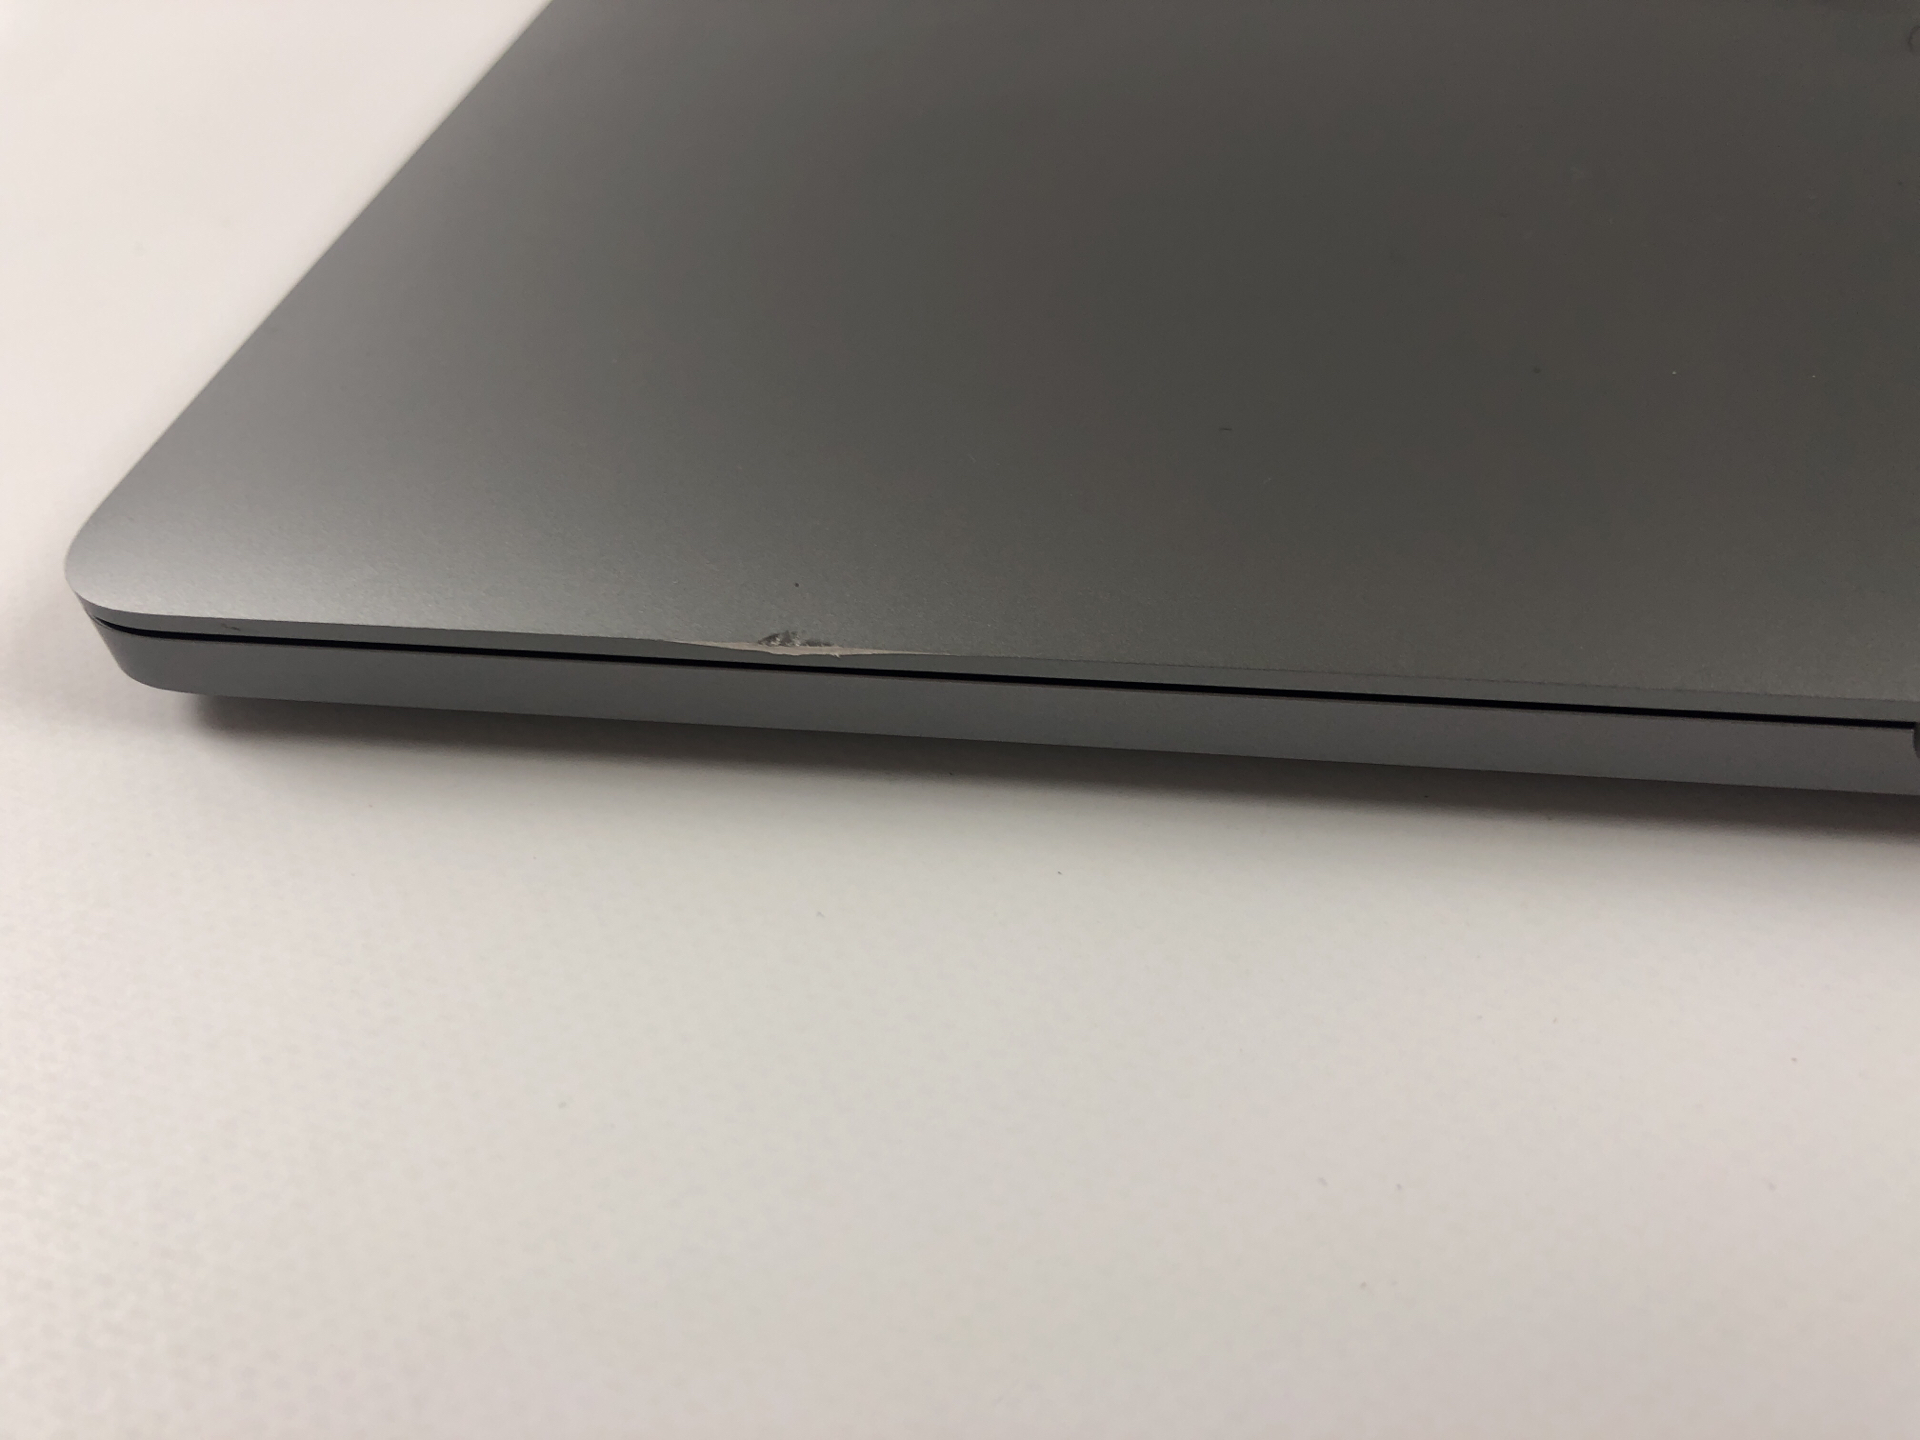 "MacBook Pro 13"" 4TBT Mid 2018 (Intel Quad-Core i5 2.3 GHz 8 GB RAM 512 GB SSD), Space Gray, Intel Quad-Core i5 2.3 GHz, 8 GB RAM, 512 GB SSD, obraz 3"